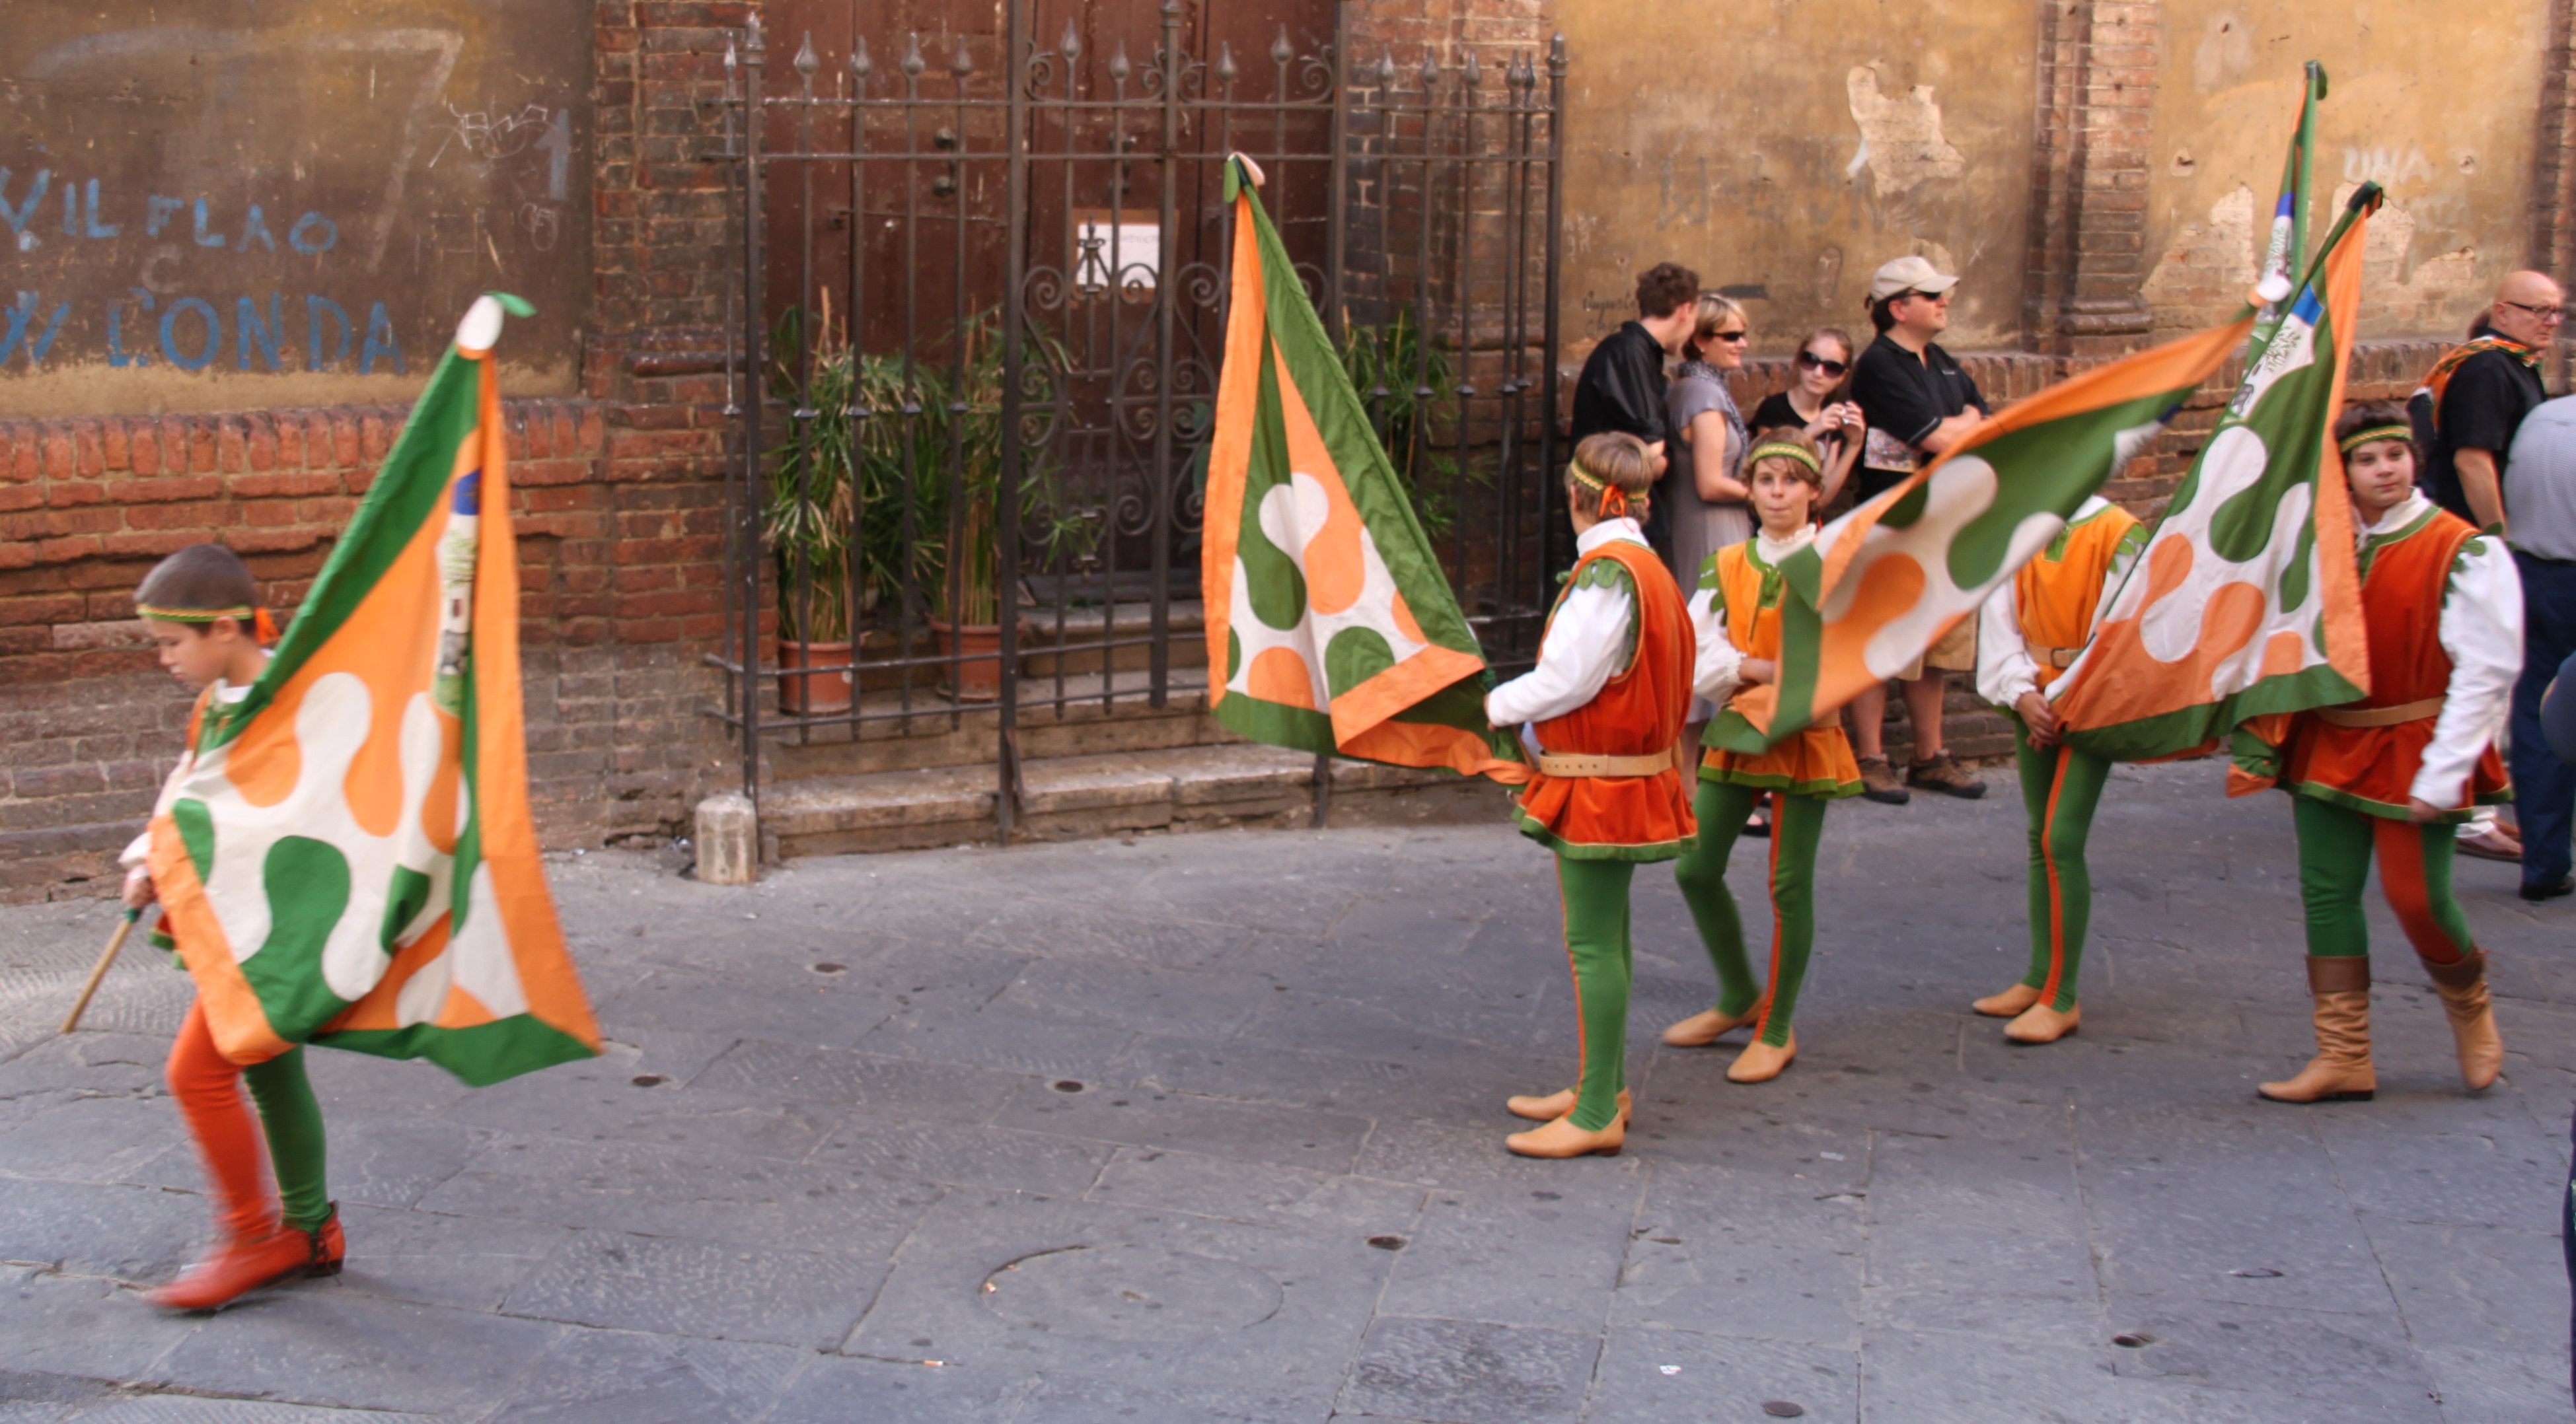 Parading through the streets of Siena